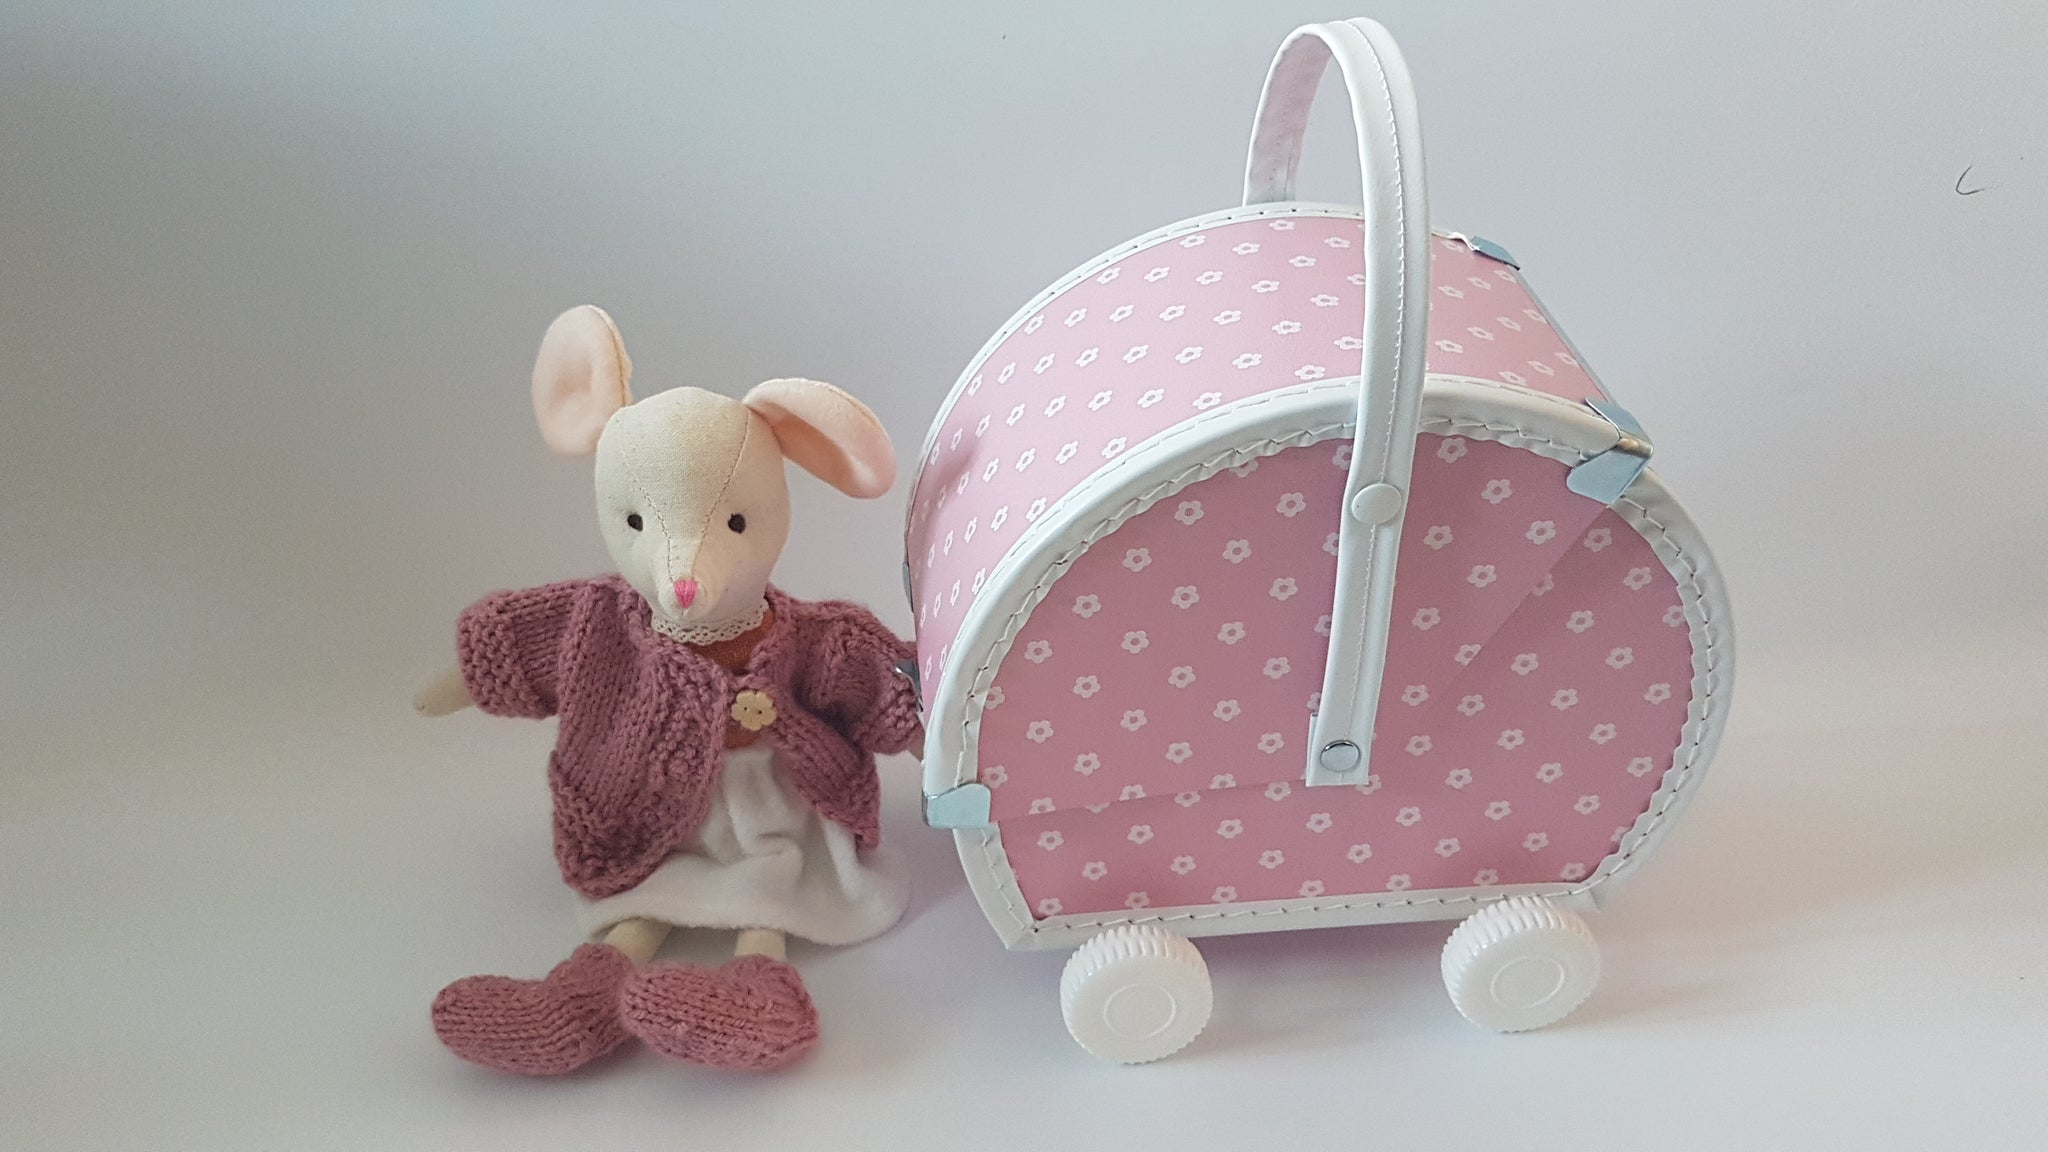 Mouse in a stroller